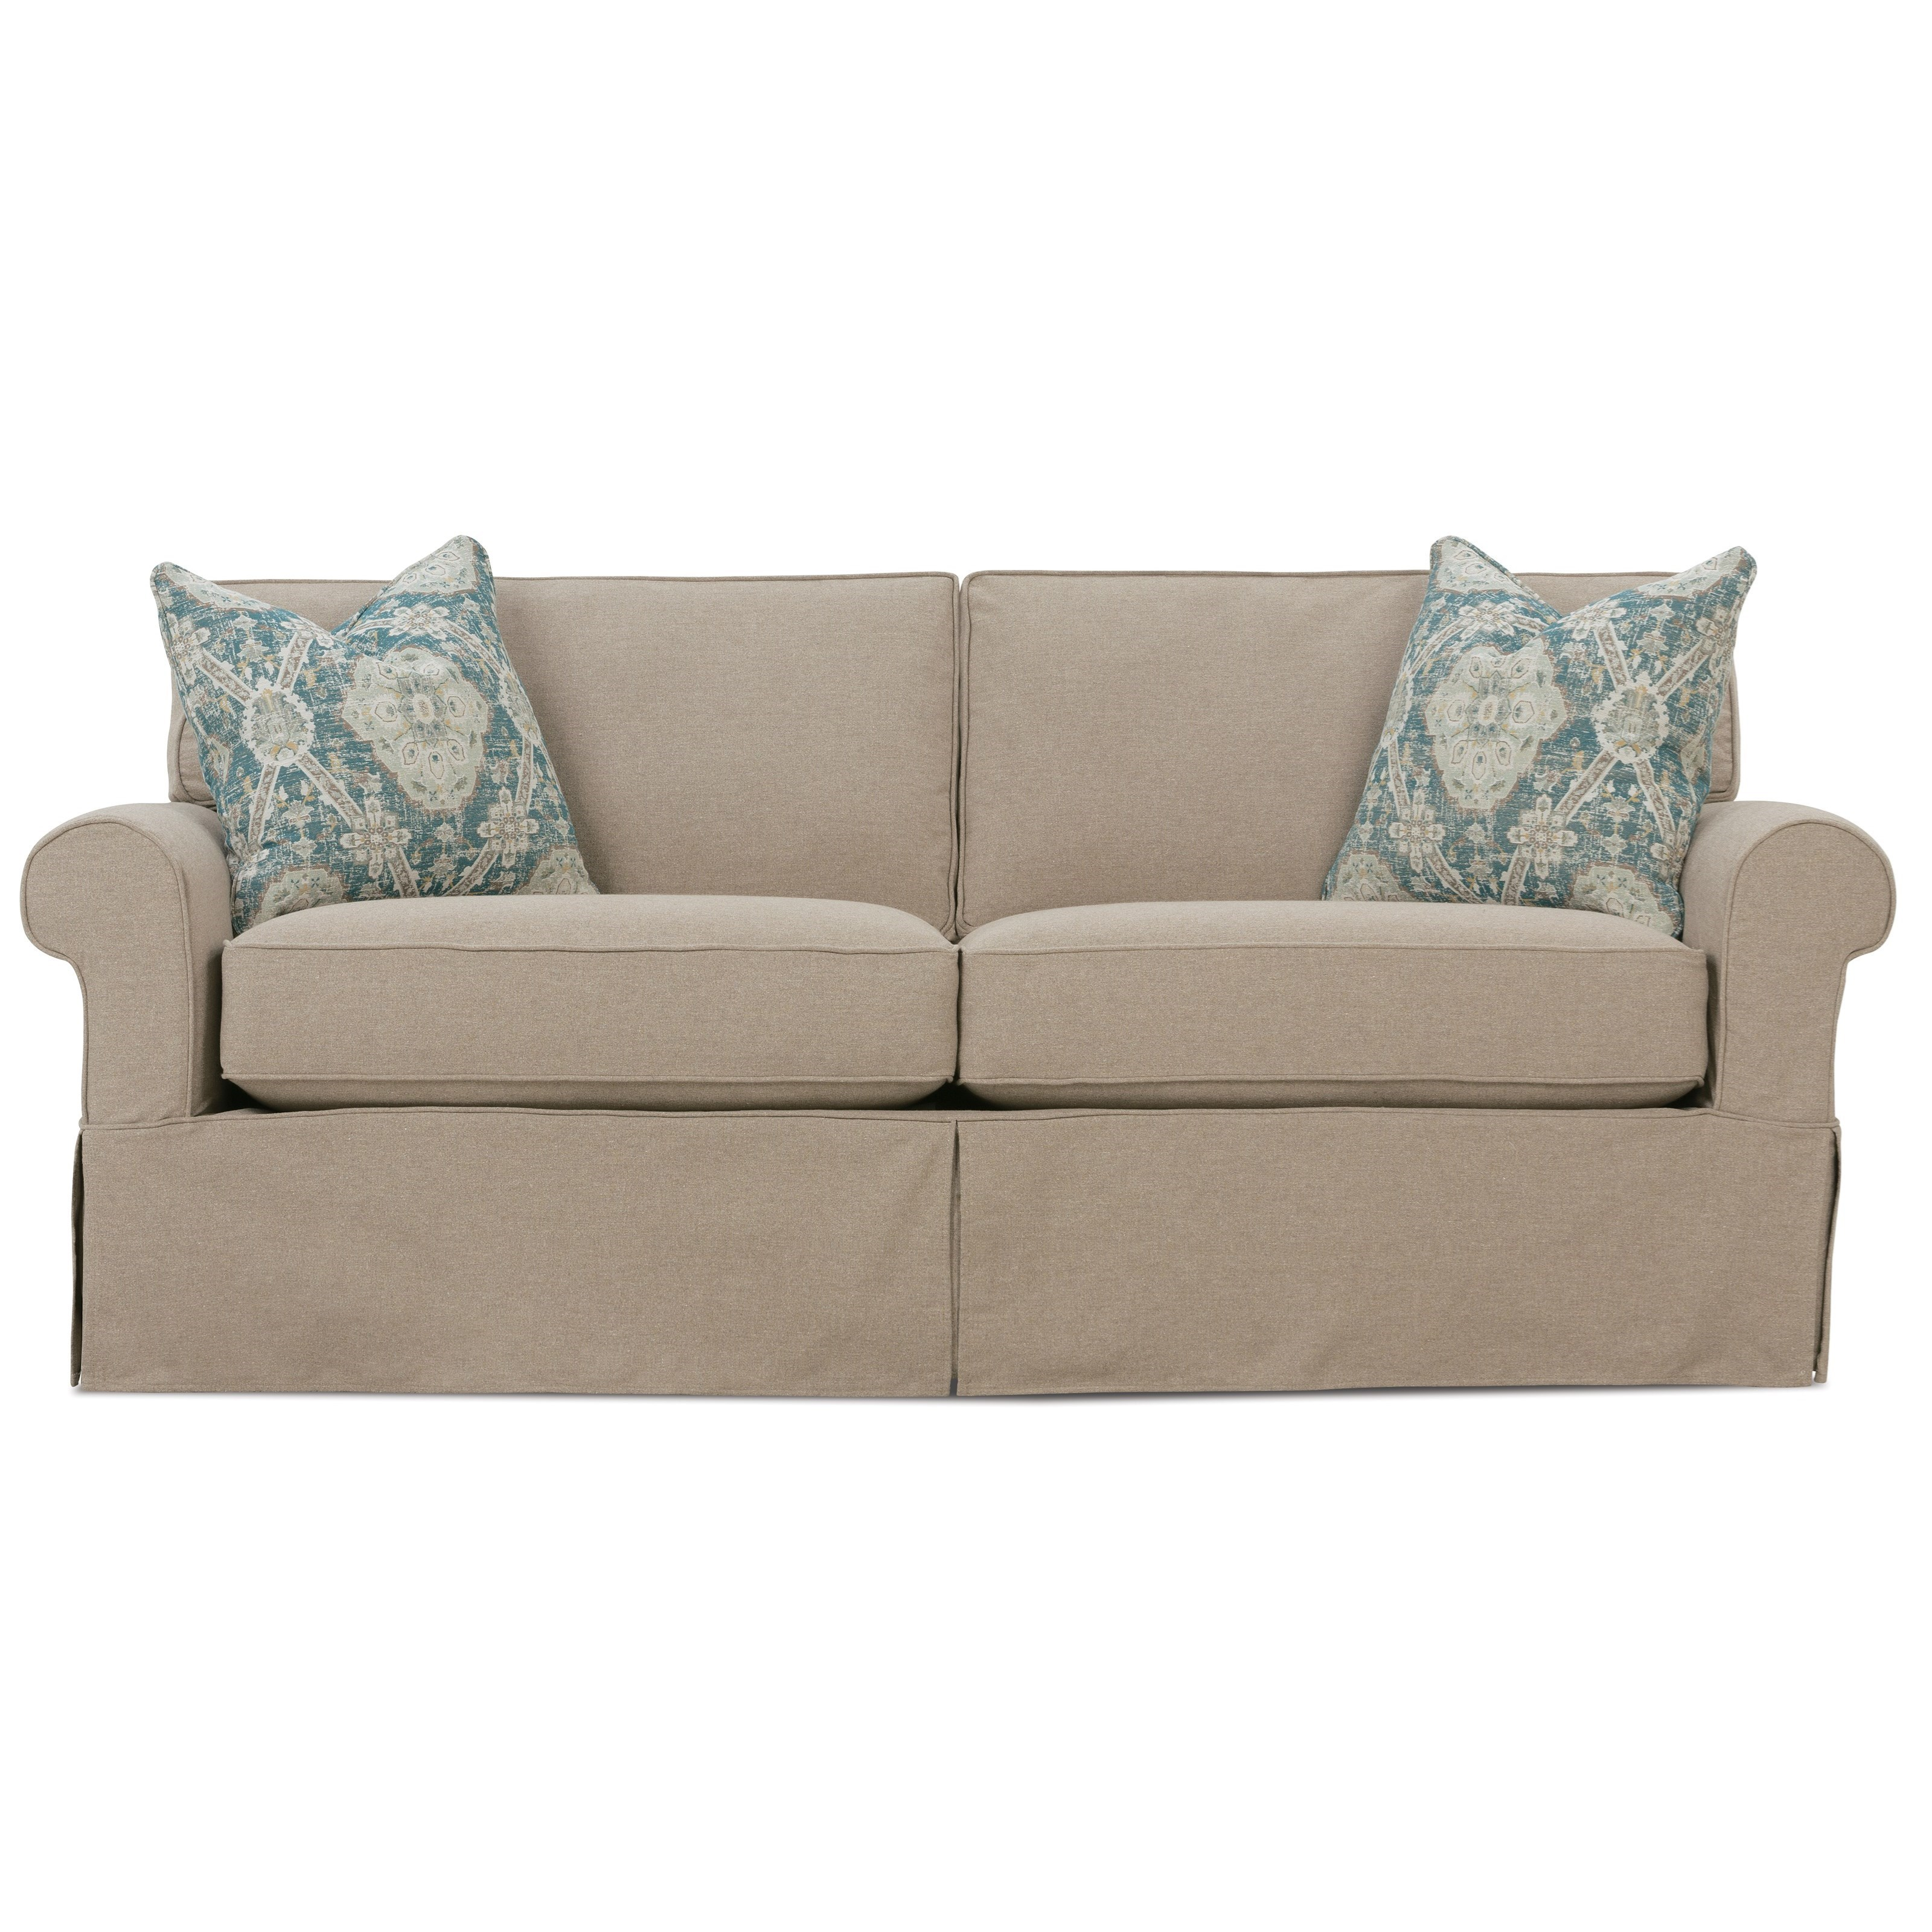 Nantucket  2-Seat Queen Sofa Sleeper by Rowe at Steger's Furniture